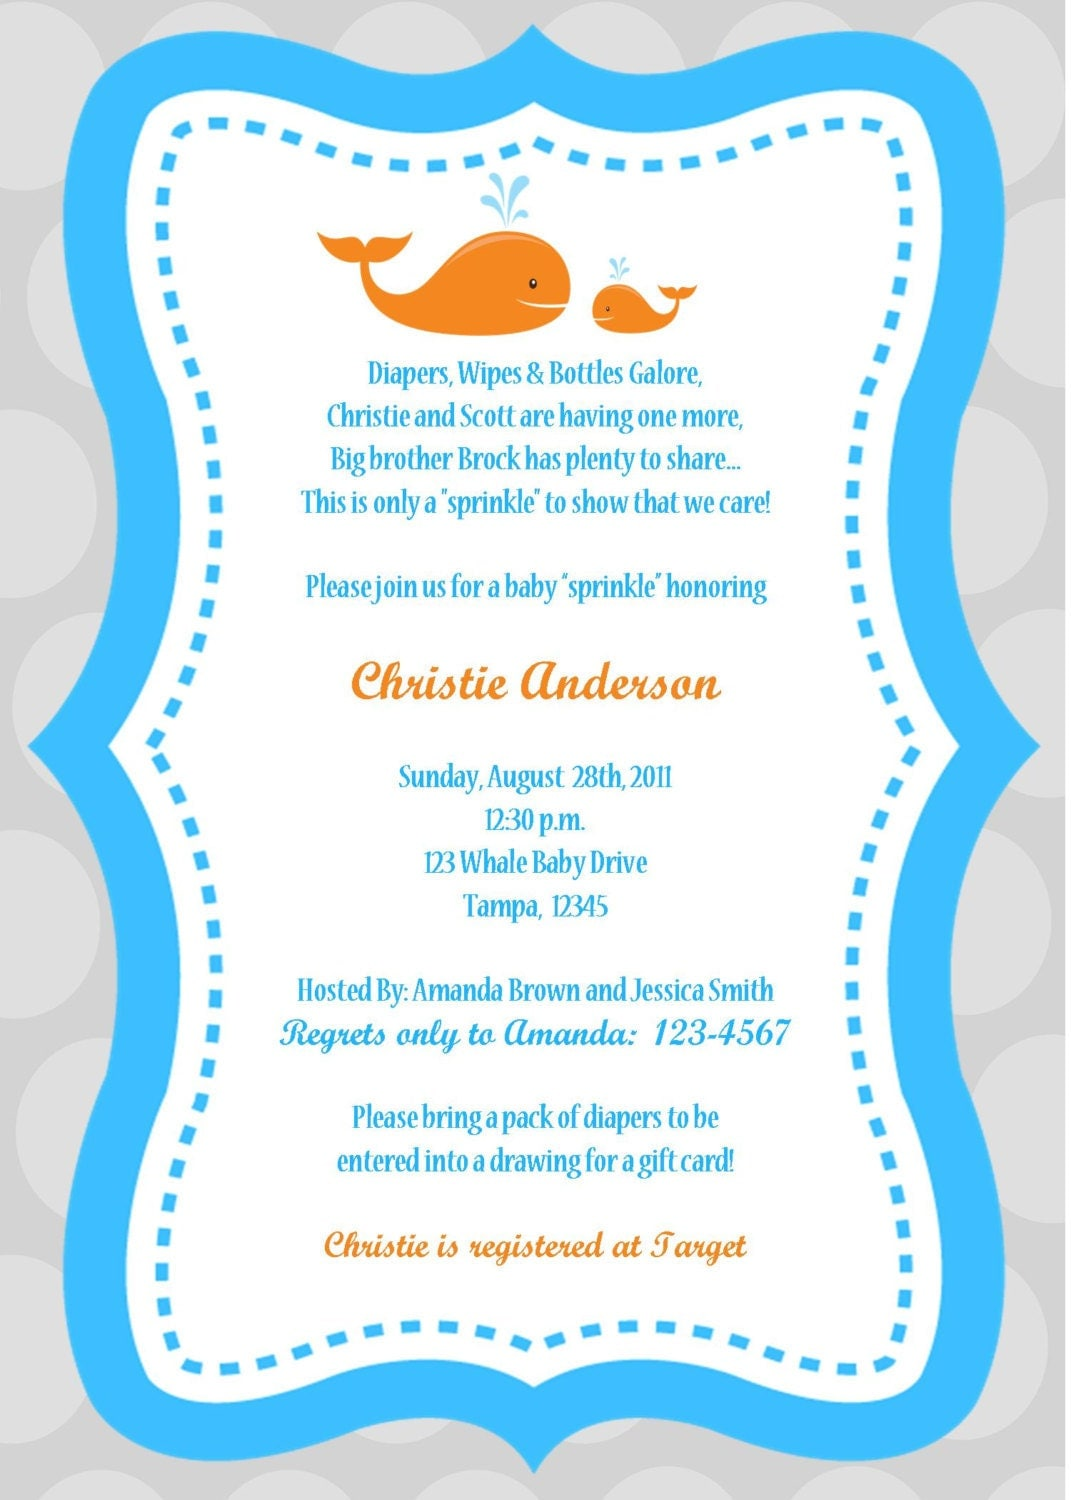 Baby Shower Invitations Etsy and get inspiration to create nice invitation ideas